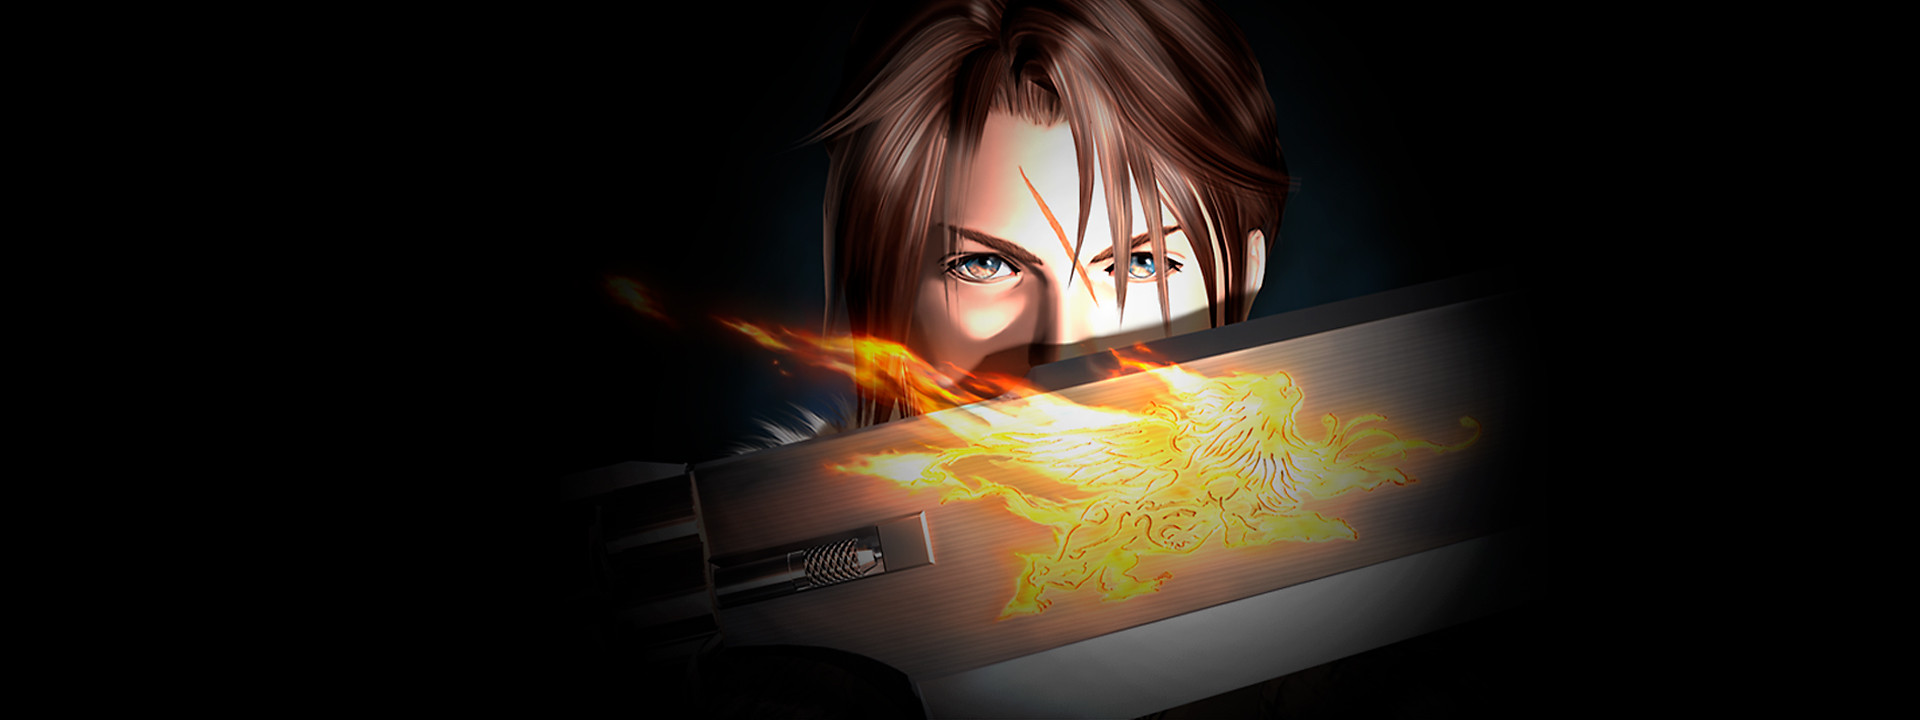 Final Fantasy Viii Remastered Game Ps4 Playstation